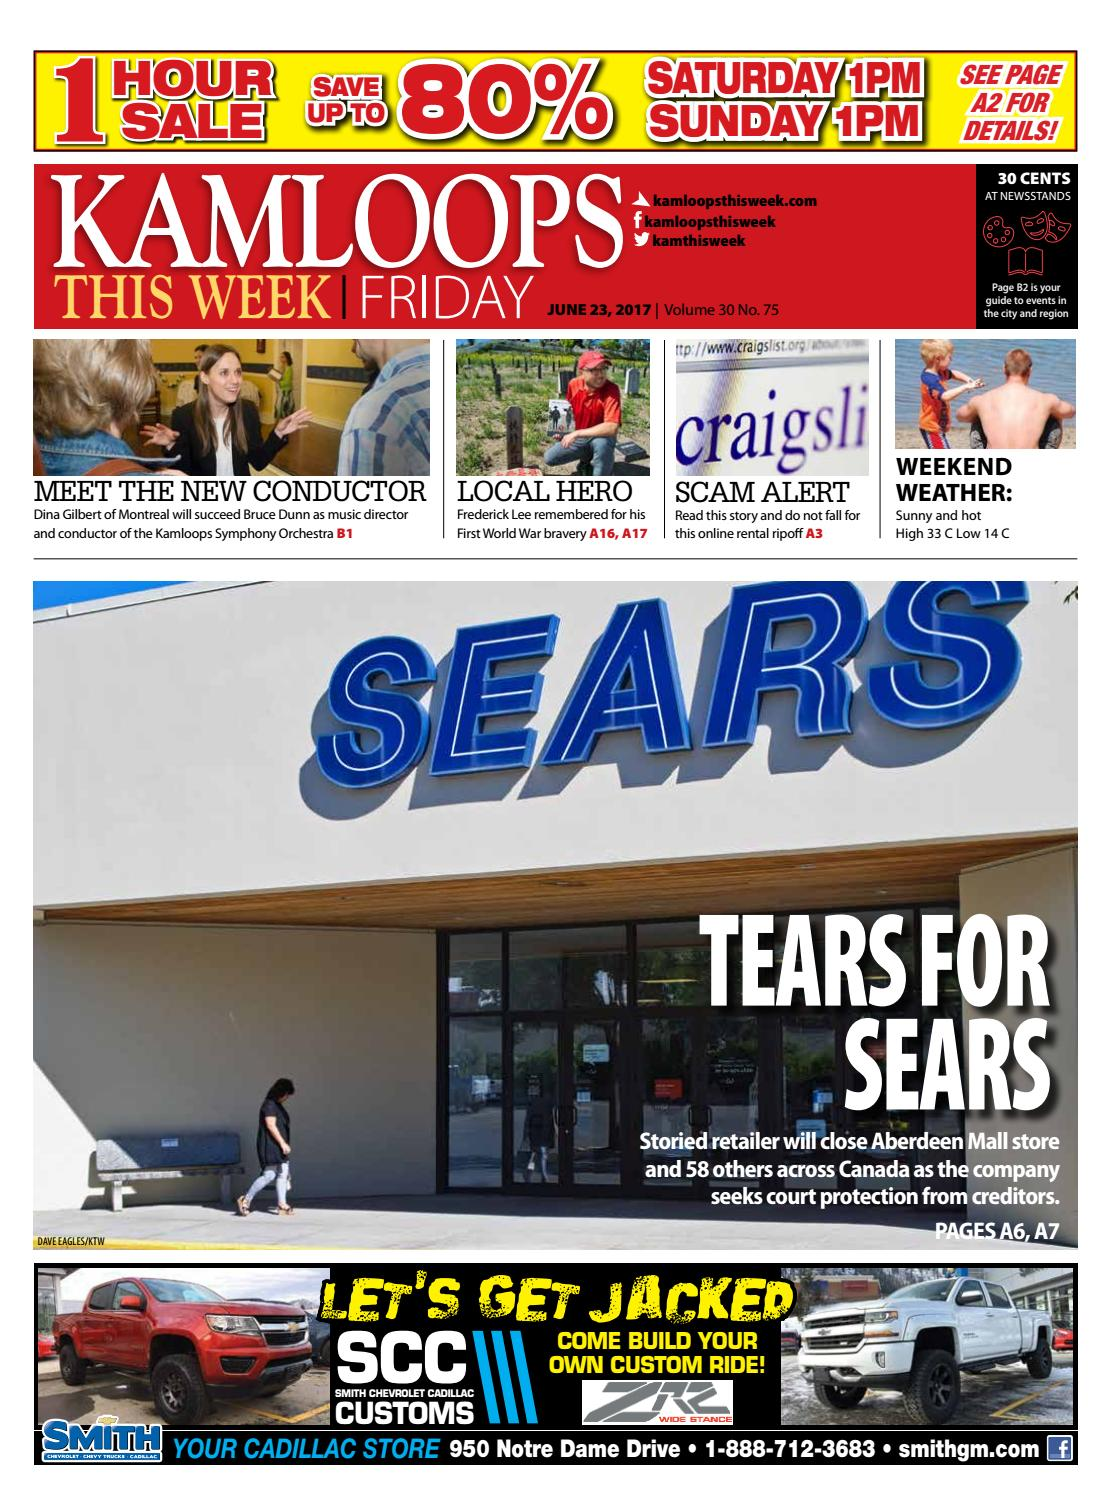 Kamloops This Week June 23, 2017 by KamloopsThisWeek - issuu